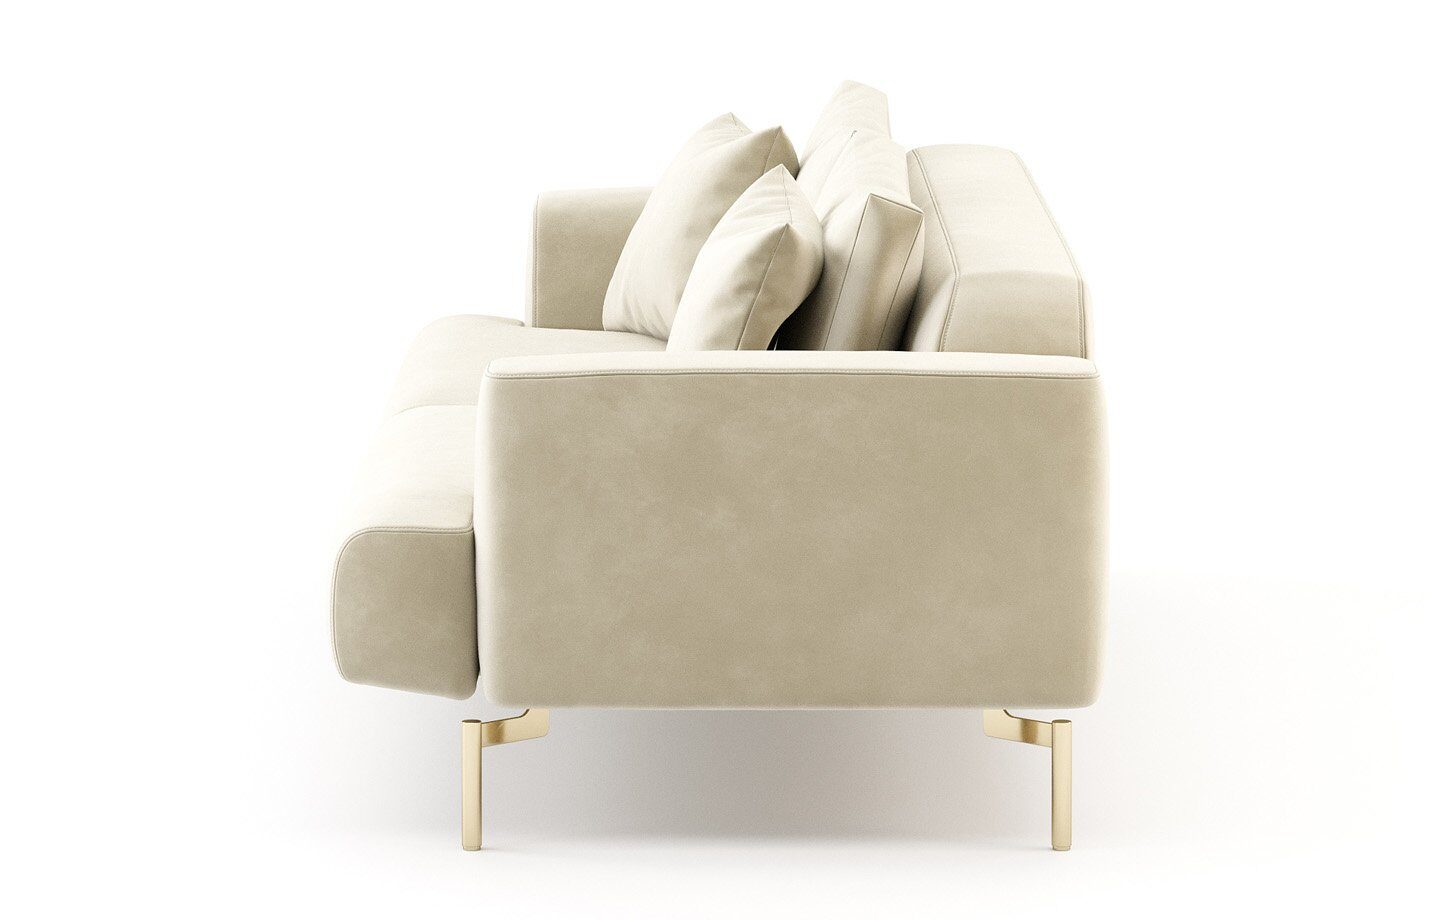 Miyana-Sofa-by-fabiia-furniture-signature-3